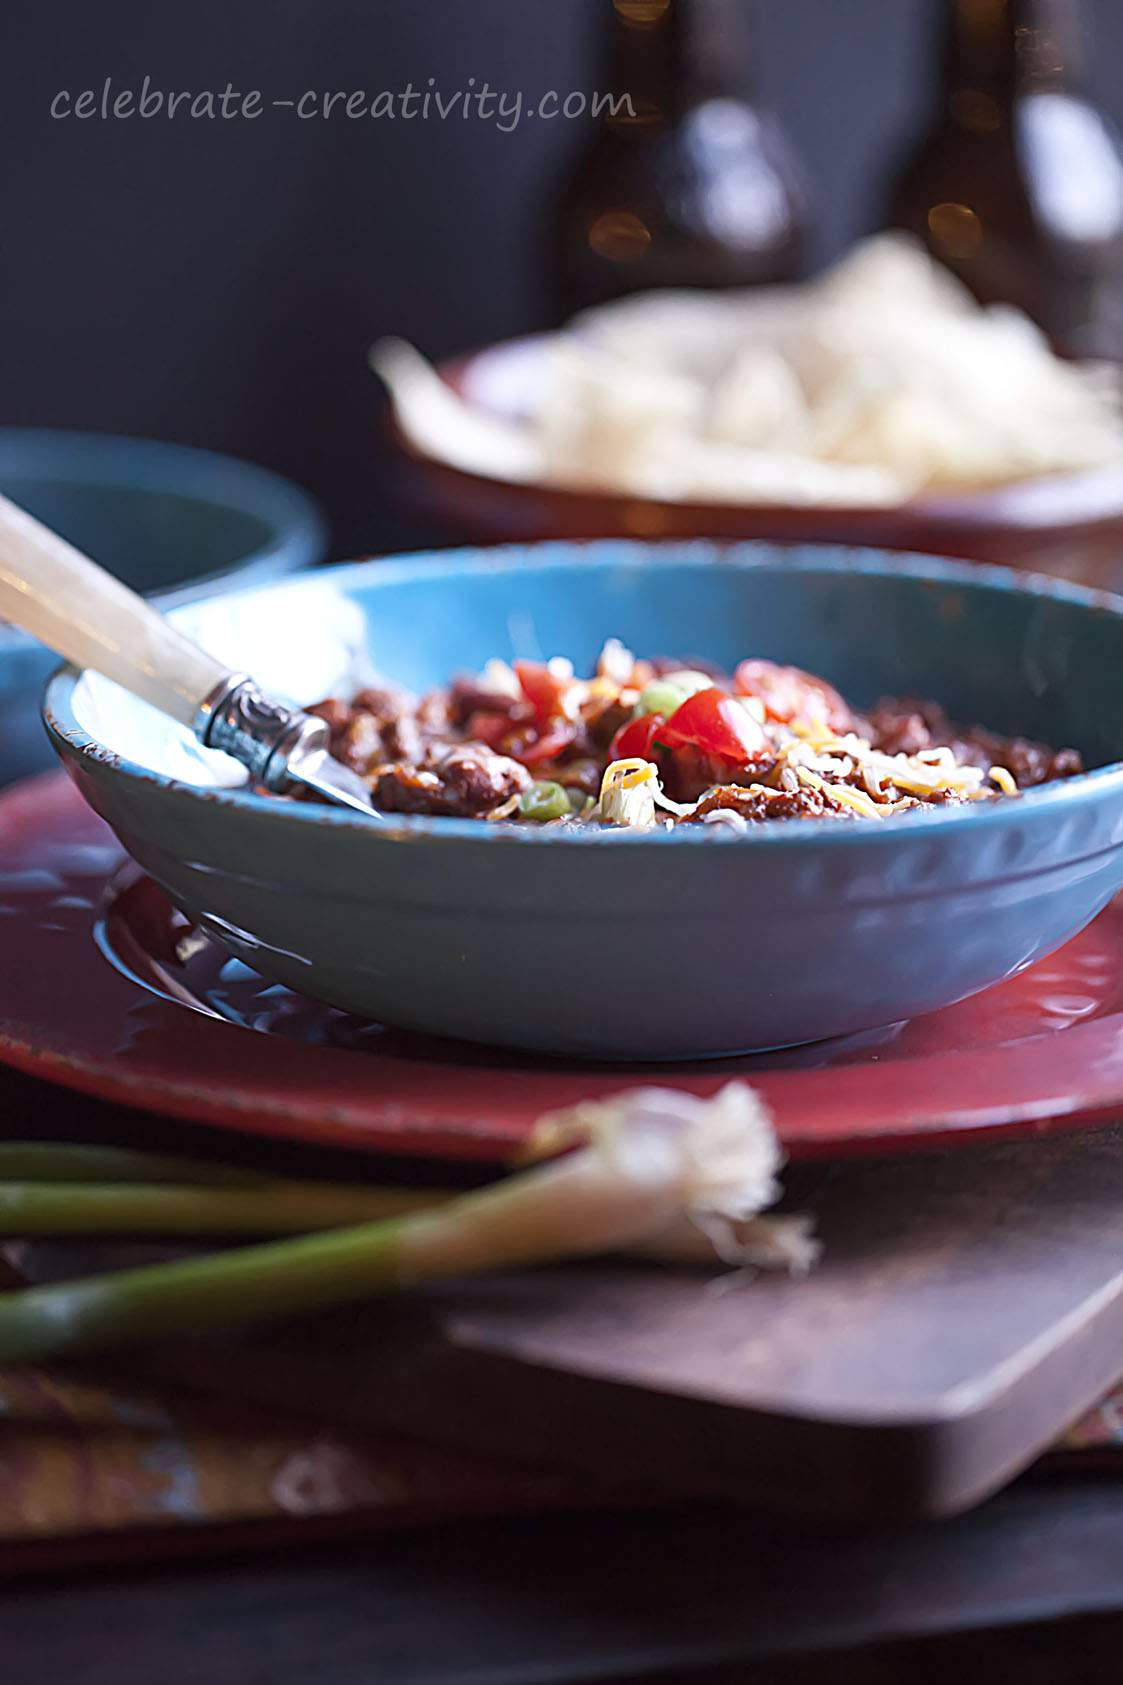 Celebrate creativity heres another link to my full pdf recipe download best ever chili recipe forumfinder Image collections